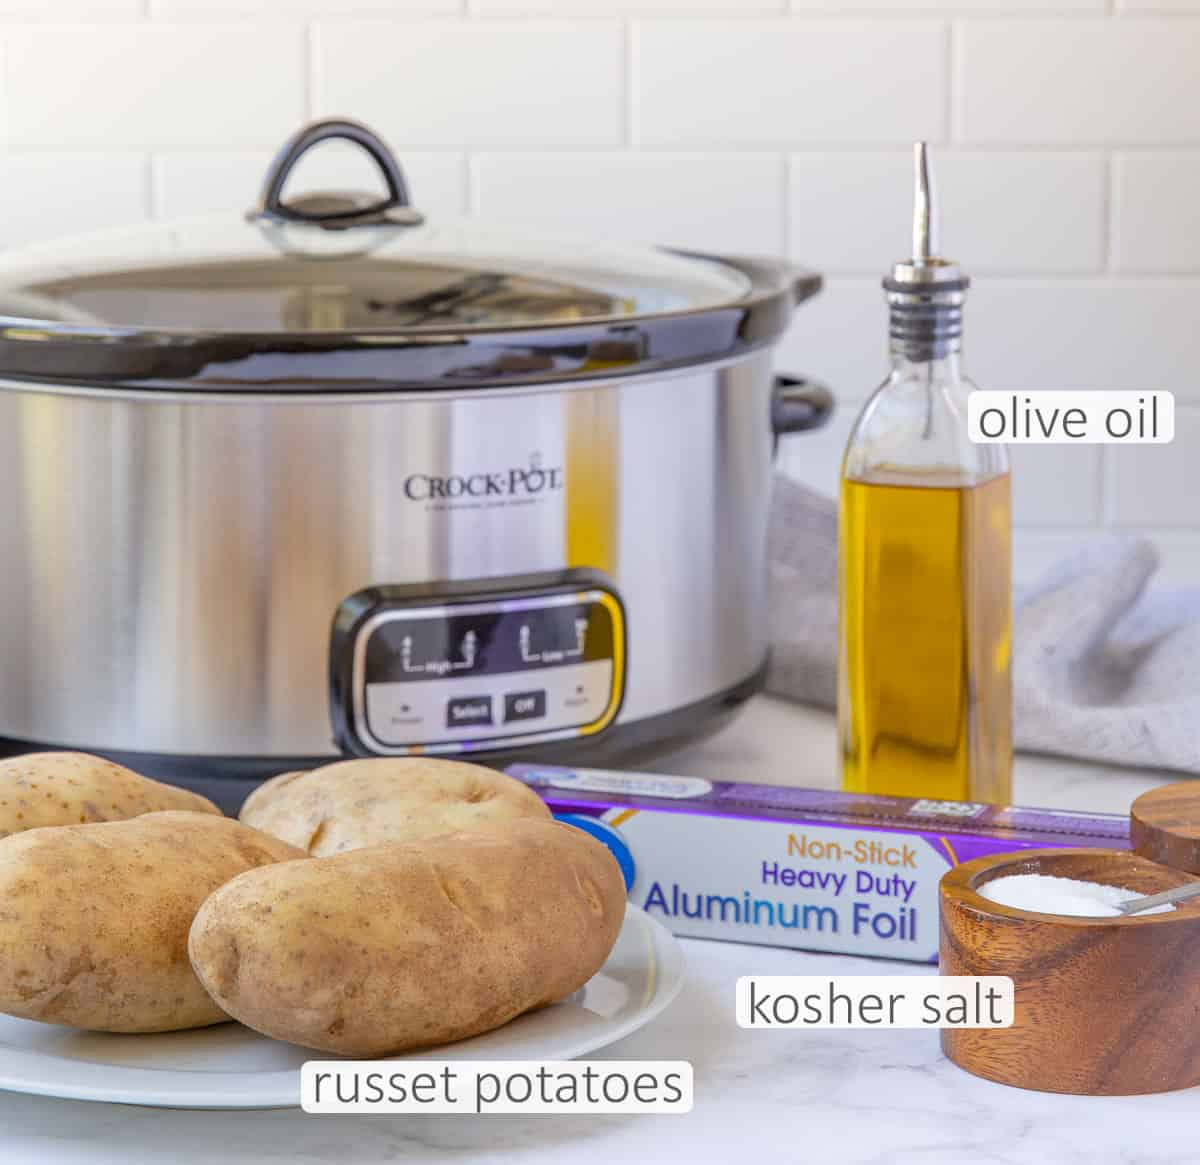 A slow cooker, russet potatoes, salt, olive oil and a roll of aluminum foil.